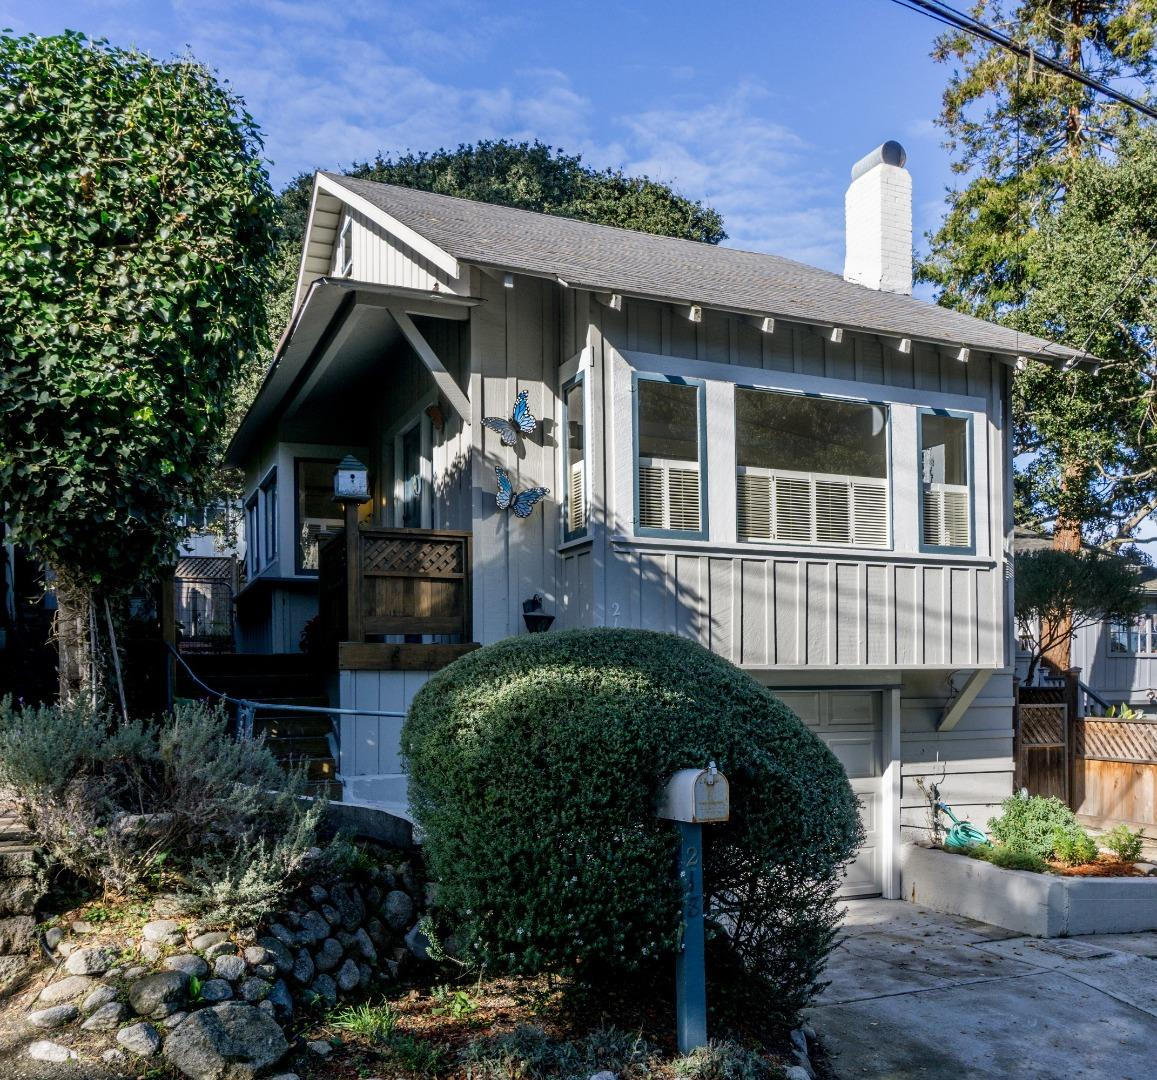 218 Chestnut St, Pacific Grove, CA